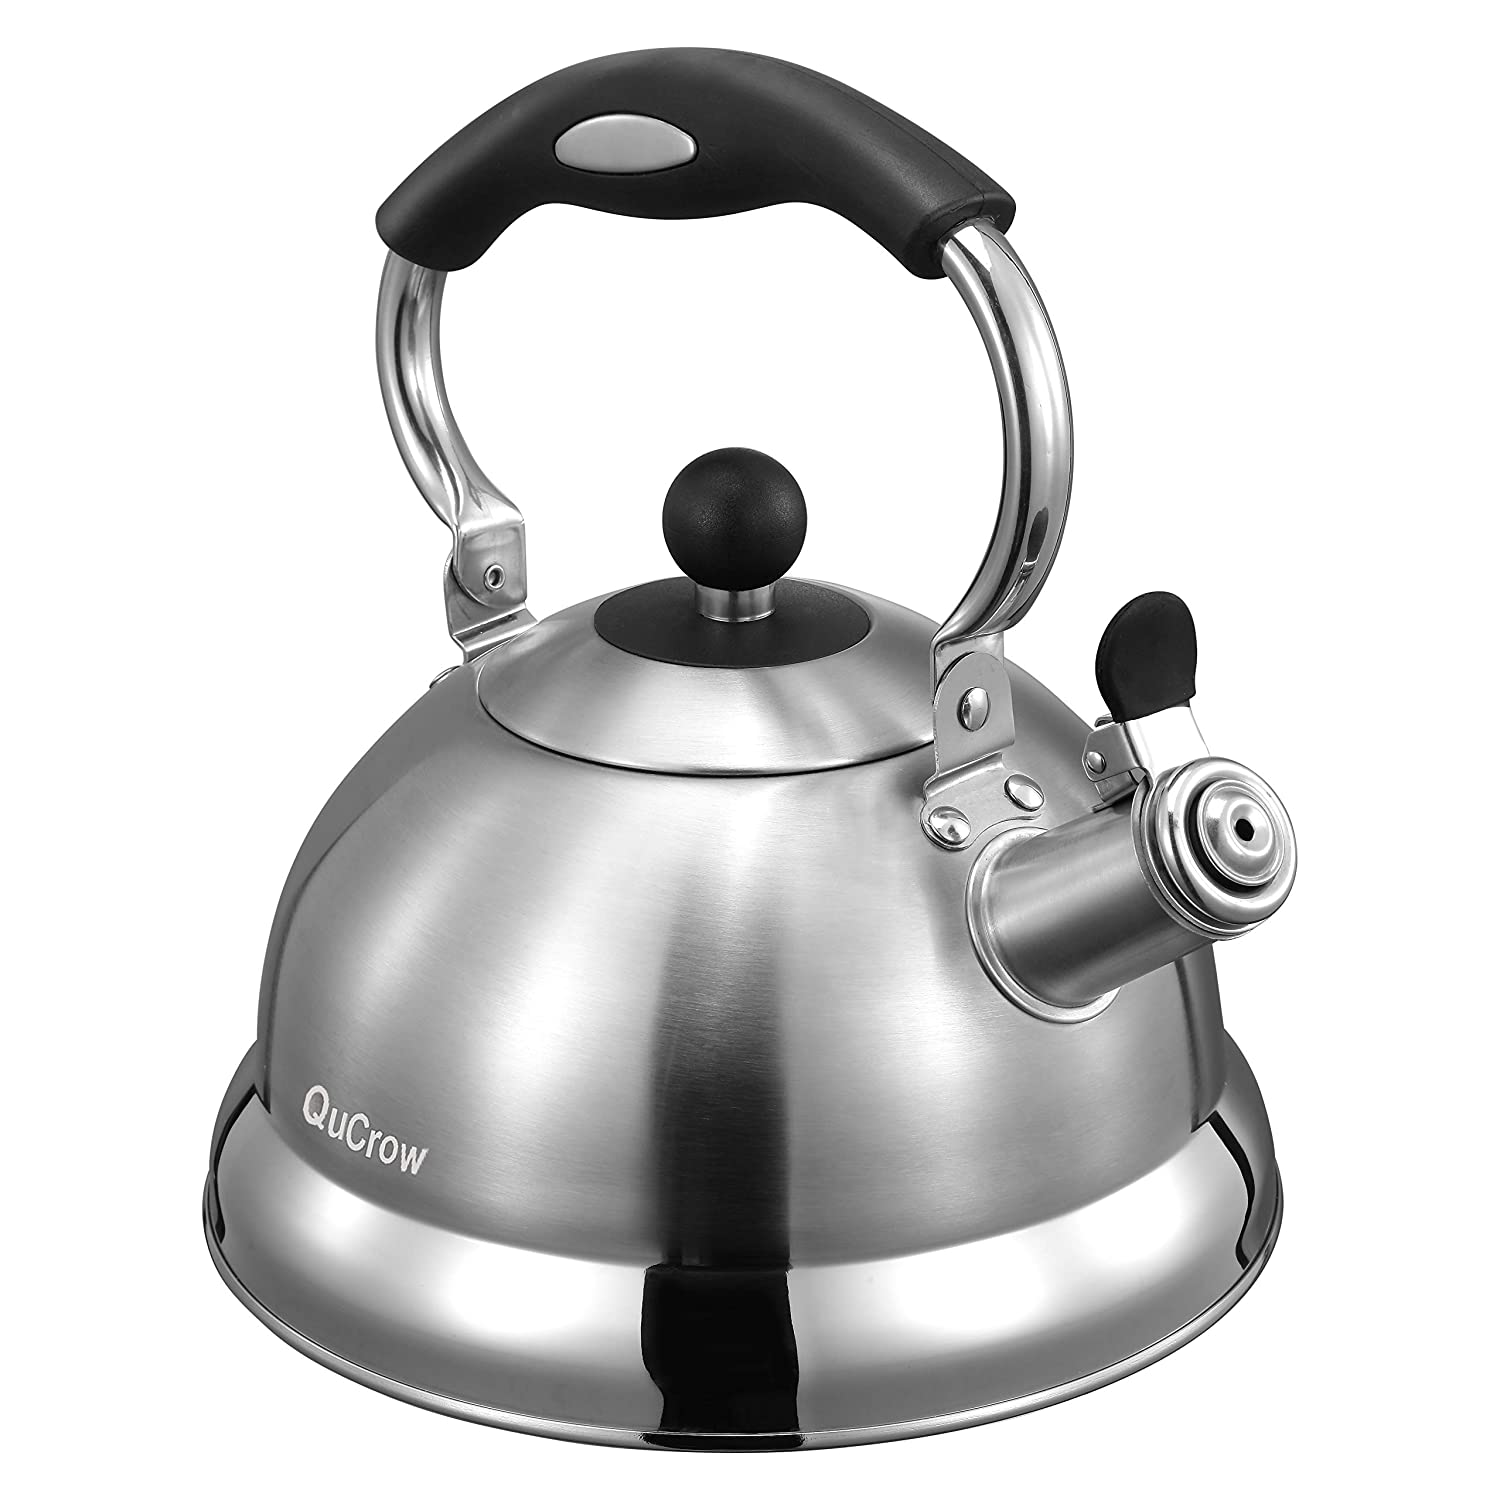 New Version QuCrow 18/10 Whistling Tea Kettle Stovetop, Stainless Steel Tea Kettles with Heat Proof Handle, Tea Pot, 3 Quart, Silver